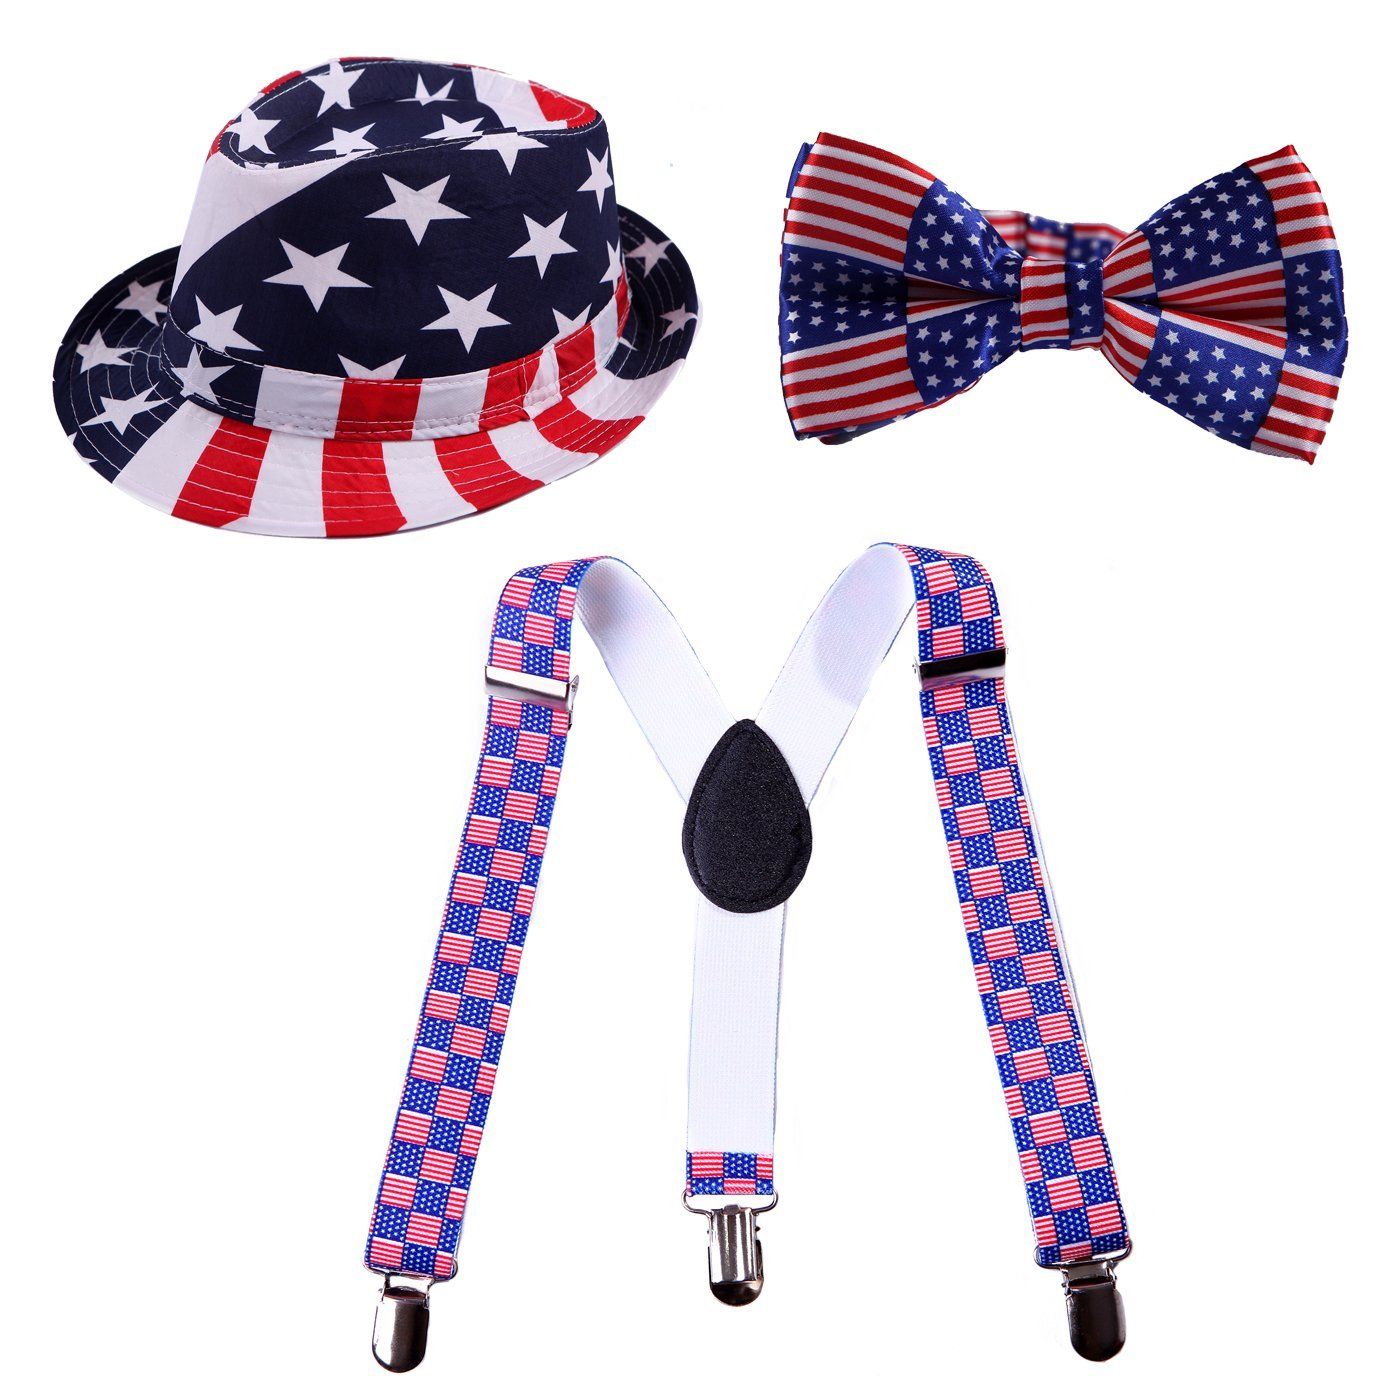 HDE Kid's Funky Design Solid Color Adjustable Elastic Clip Suspenders with Pre-Tied Microfiber Neck Strap Bow tie and Short Brim Trilby Fedora Hat (US Flag)